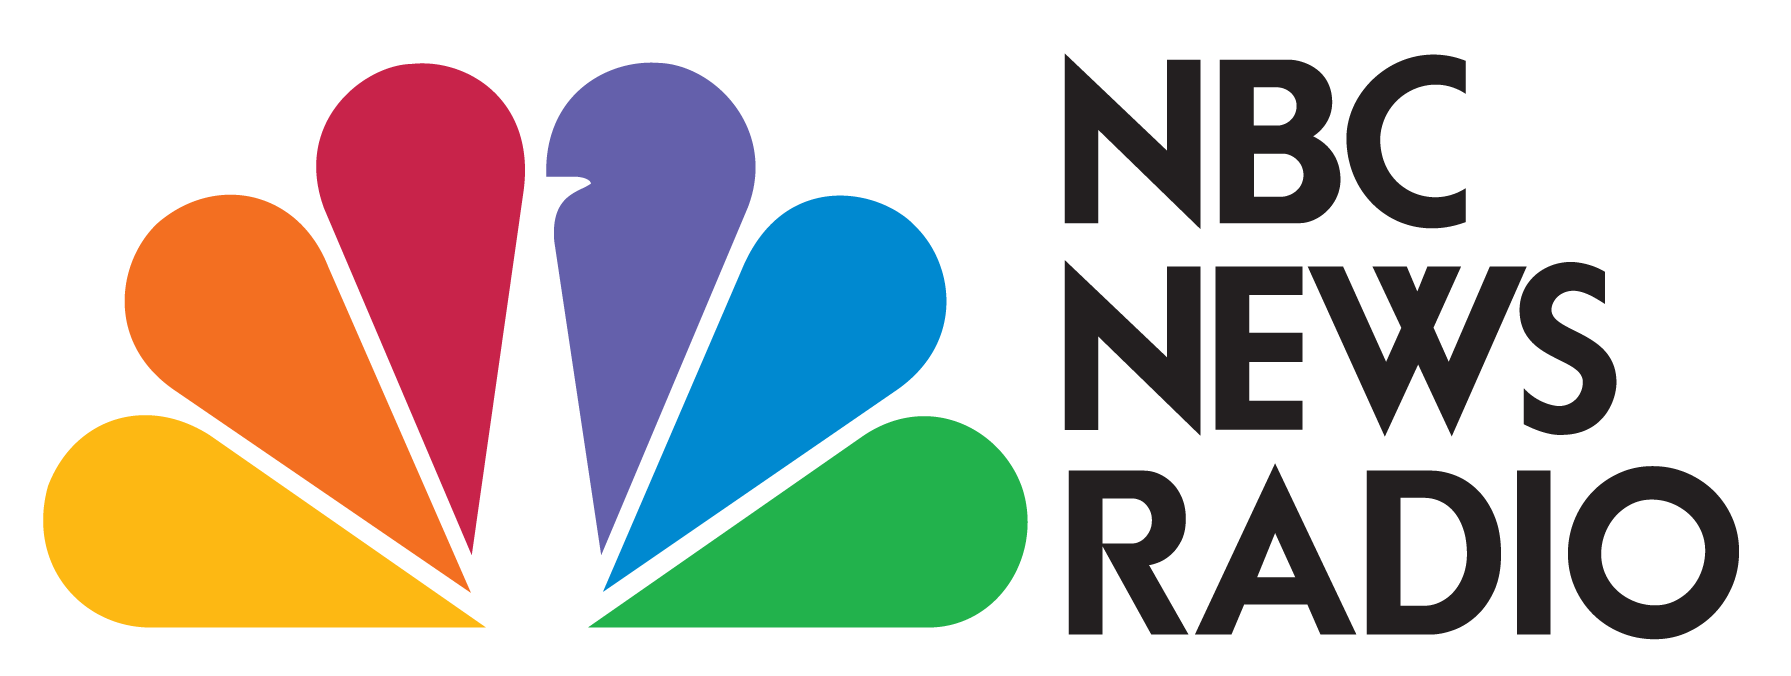 Image - NBC-News-Radio-Logo-Stacked.png | Logopedia | FANDOM powered by  Wikia - Nbc PNG